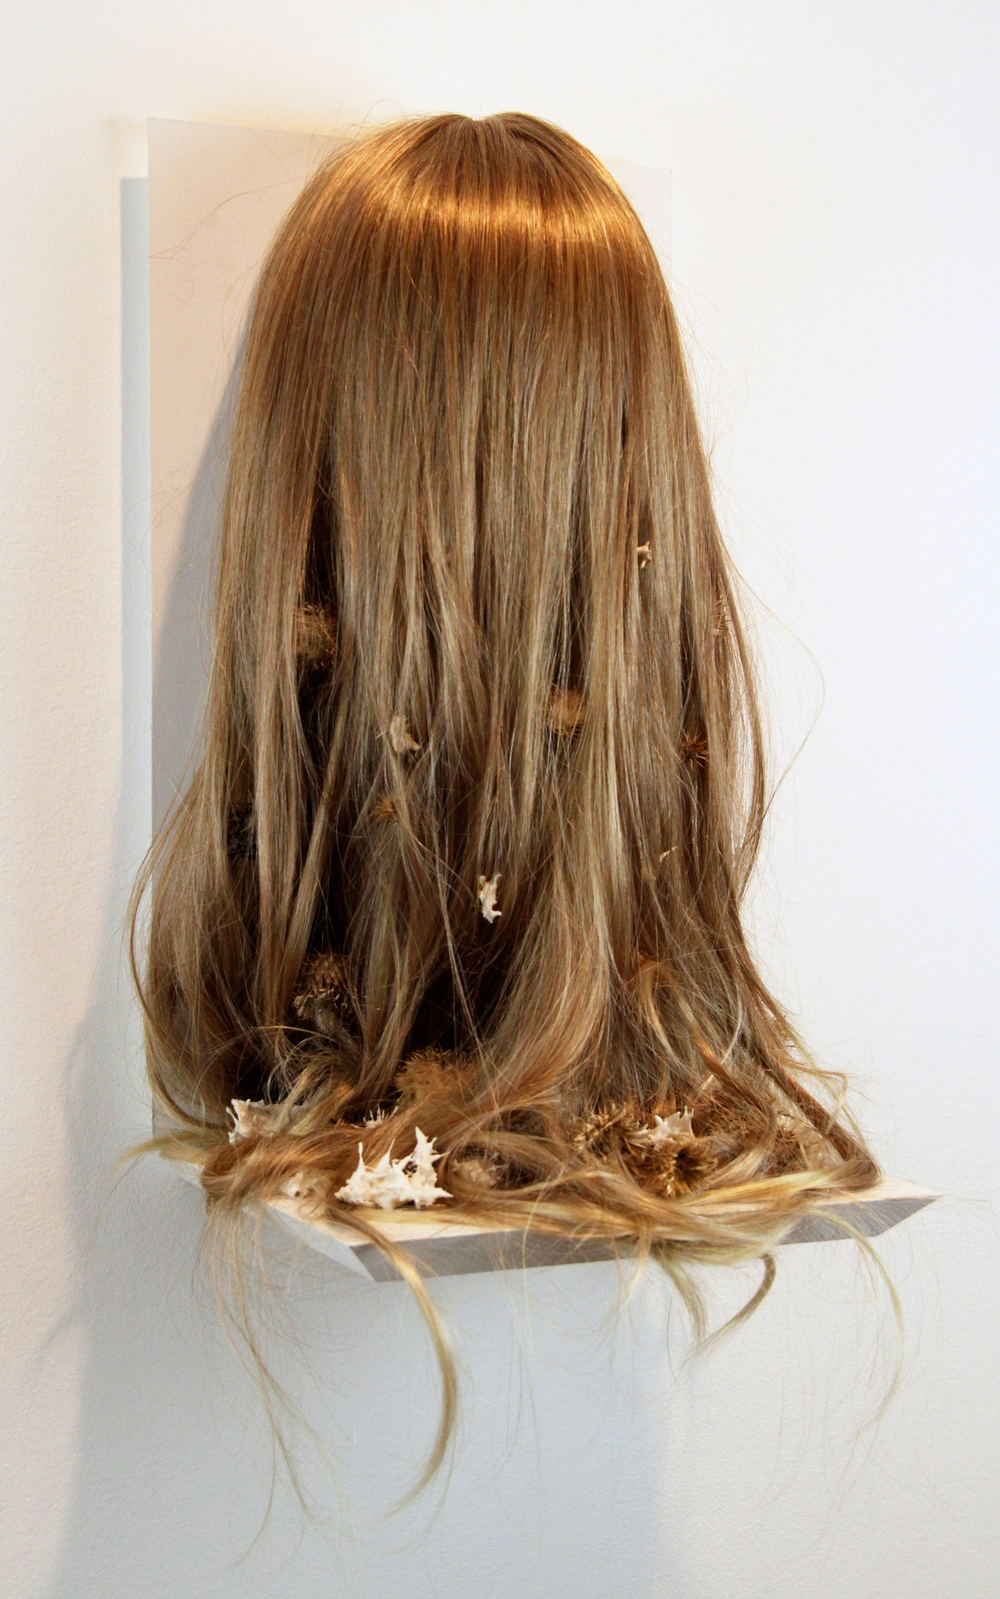 "lonelily loomed into bone.     wig, thistles, porcelain. 17 1/2 x 13 x 12"". 2011"